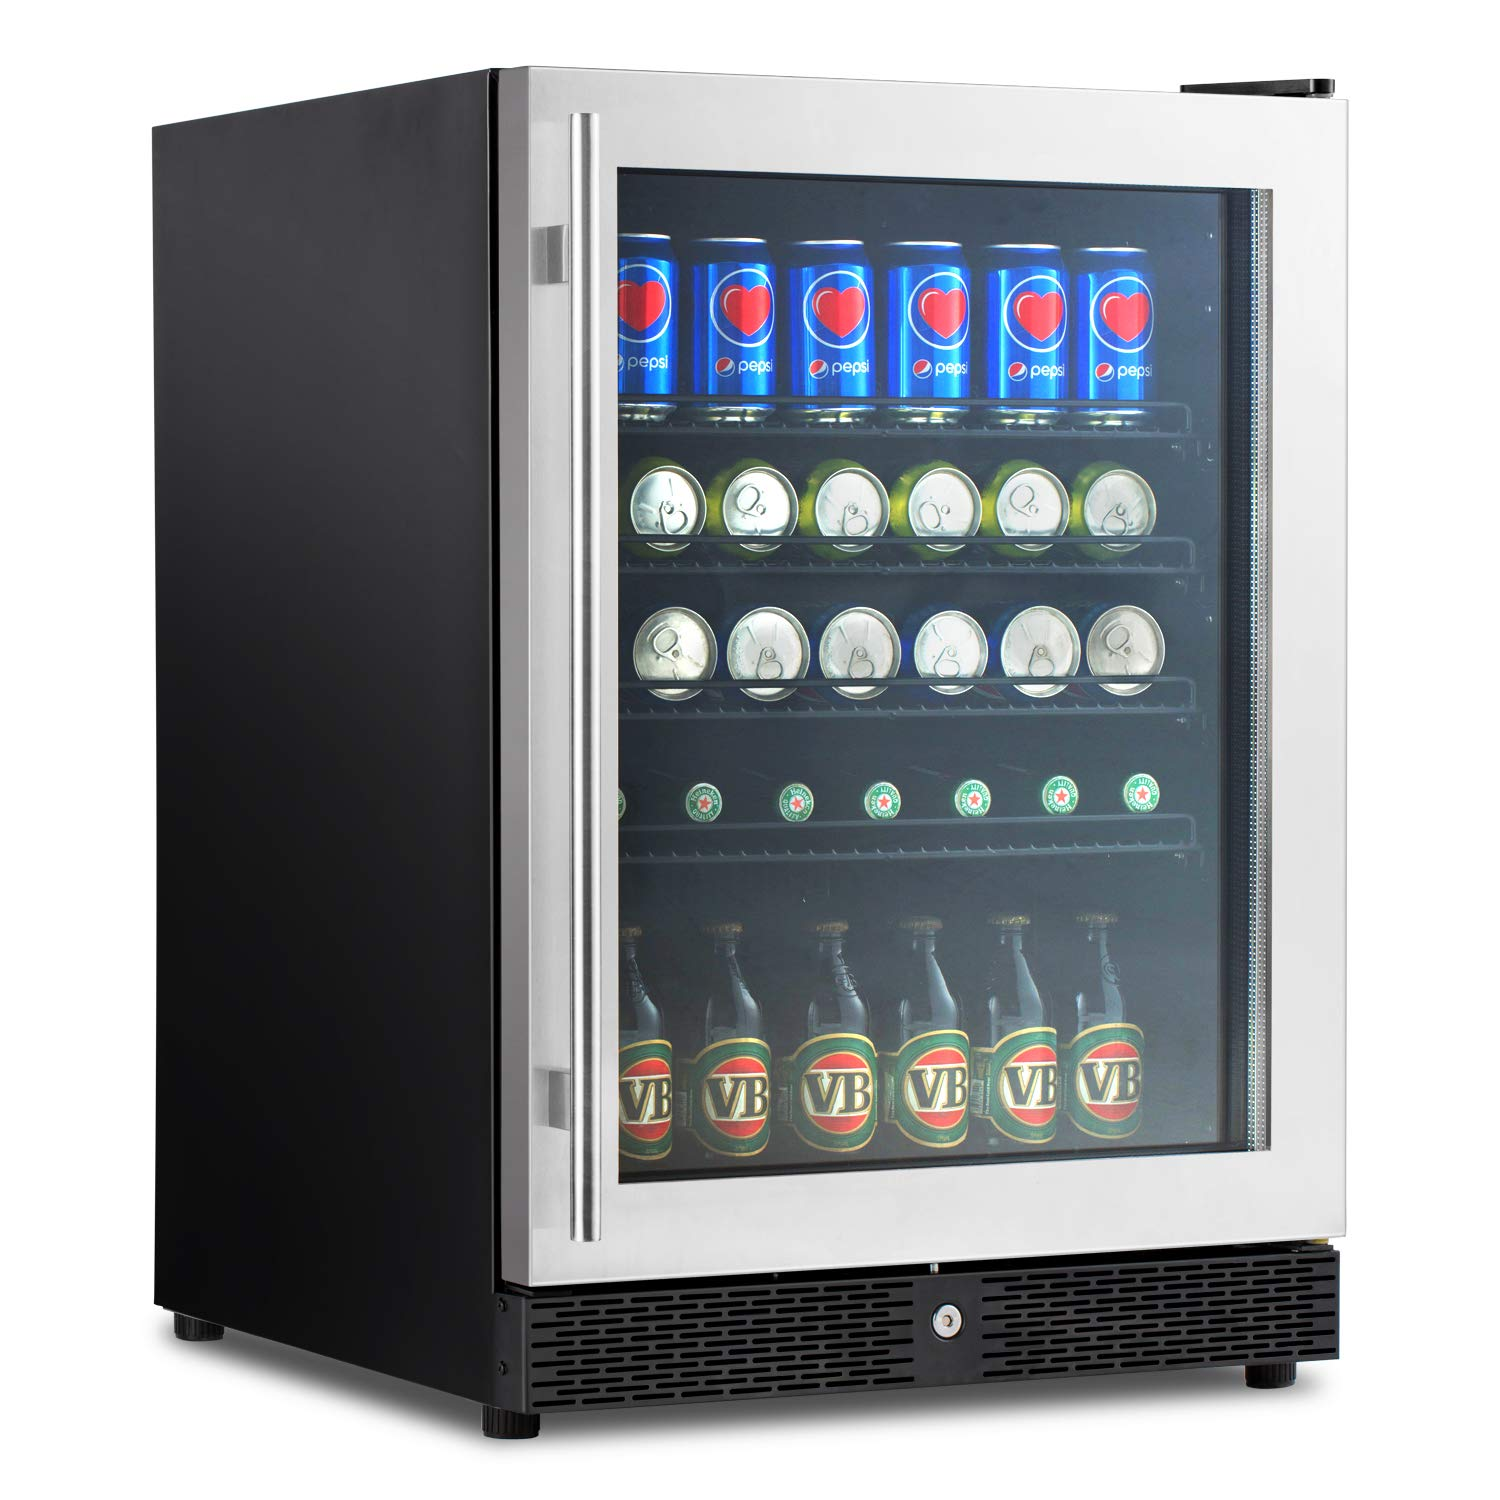 "Advanics 5.8 Cu.Ft 149 Can Frost Free Built-In Beverage Refrigerator and Fridge, 24"" Cooler with Lock & LED Lighting, Stainless Steel Trimed and Tempered Glass Door, SC-54F"